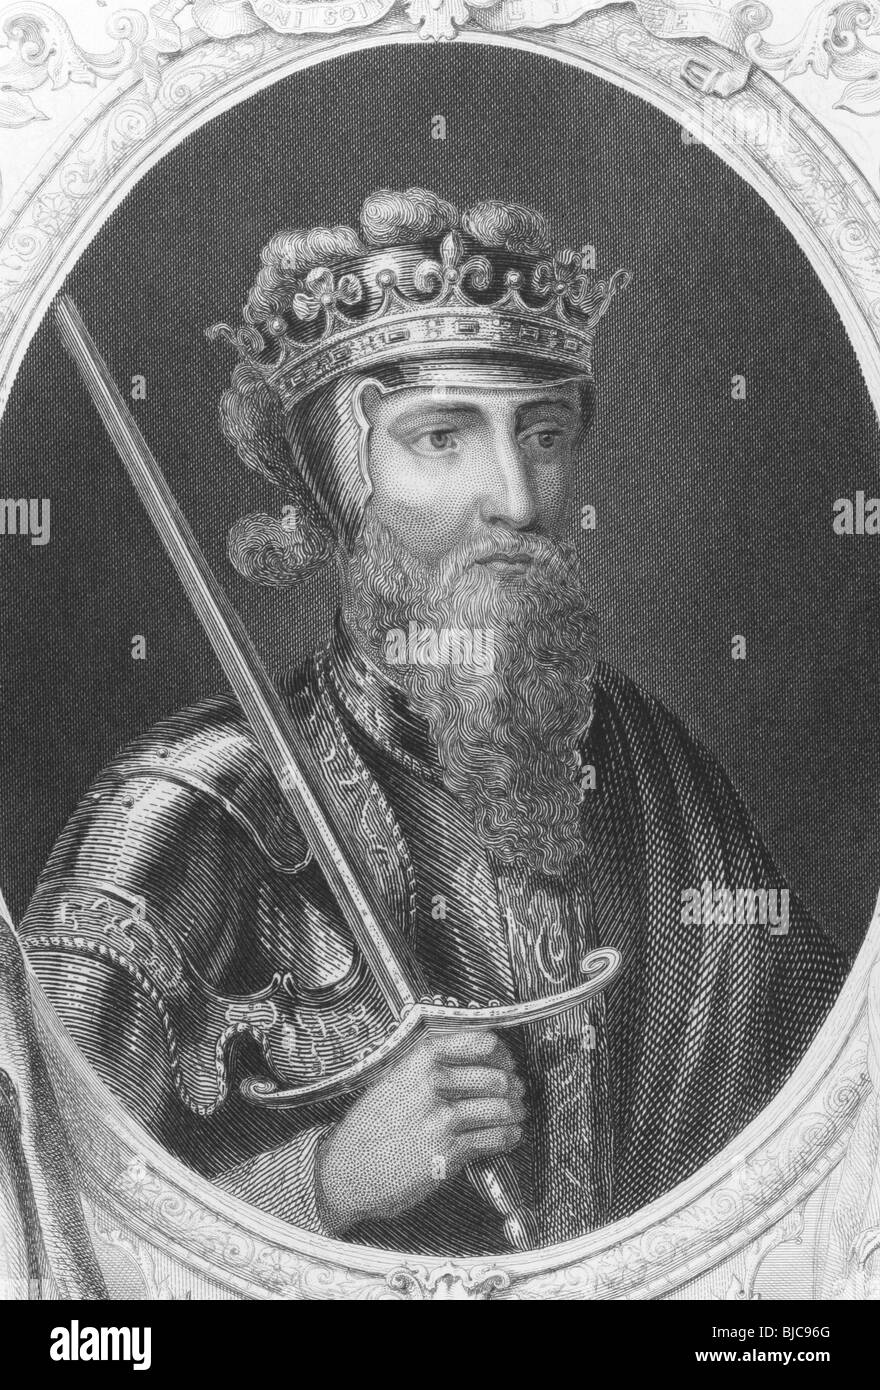 Edward III (1312-1377) on engraving from the 1800s.One of the most successful English monarchs of the Middle Ages. - Stock Image